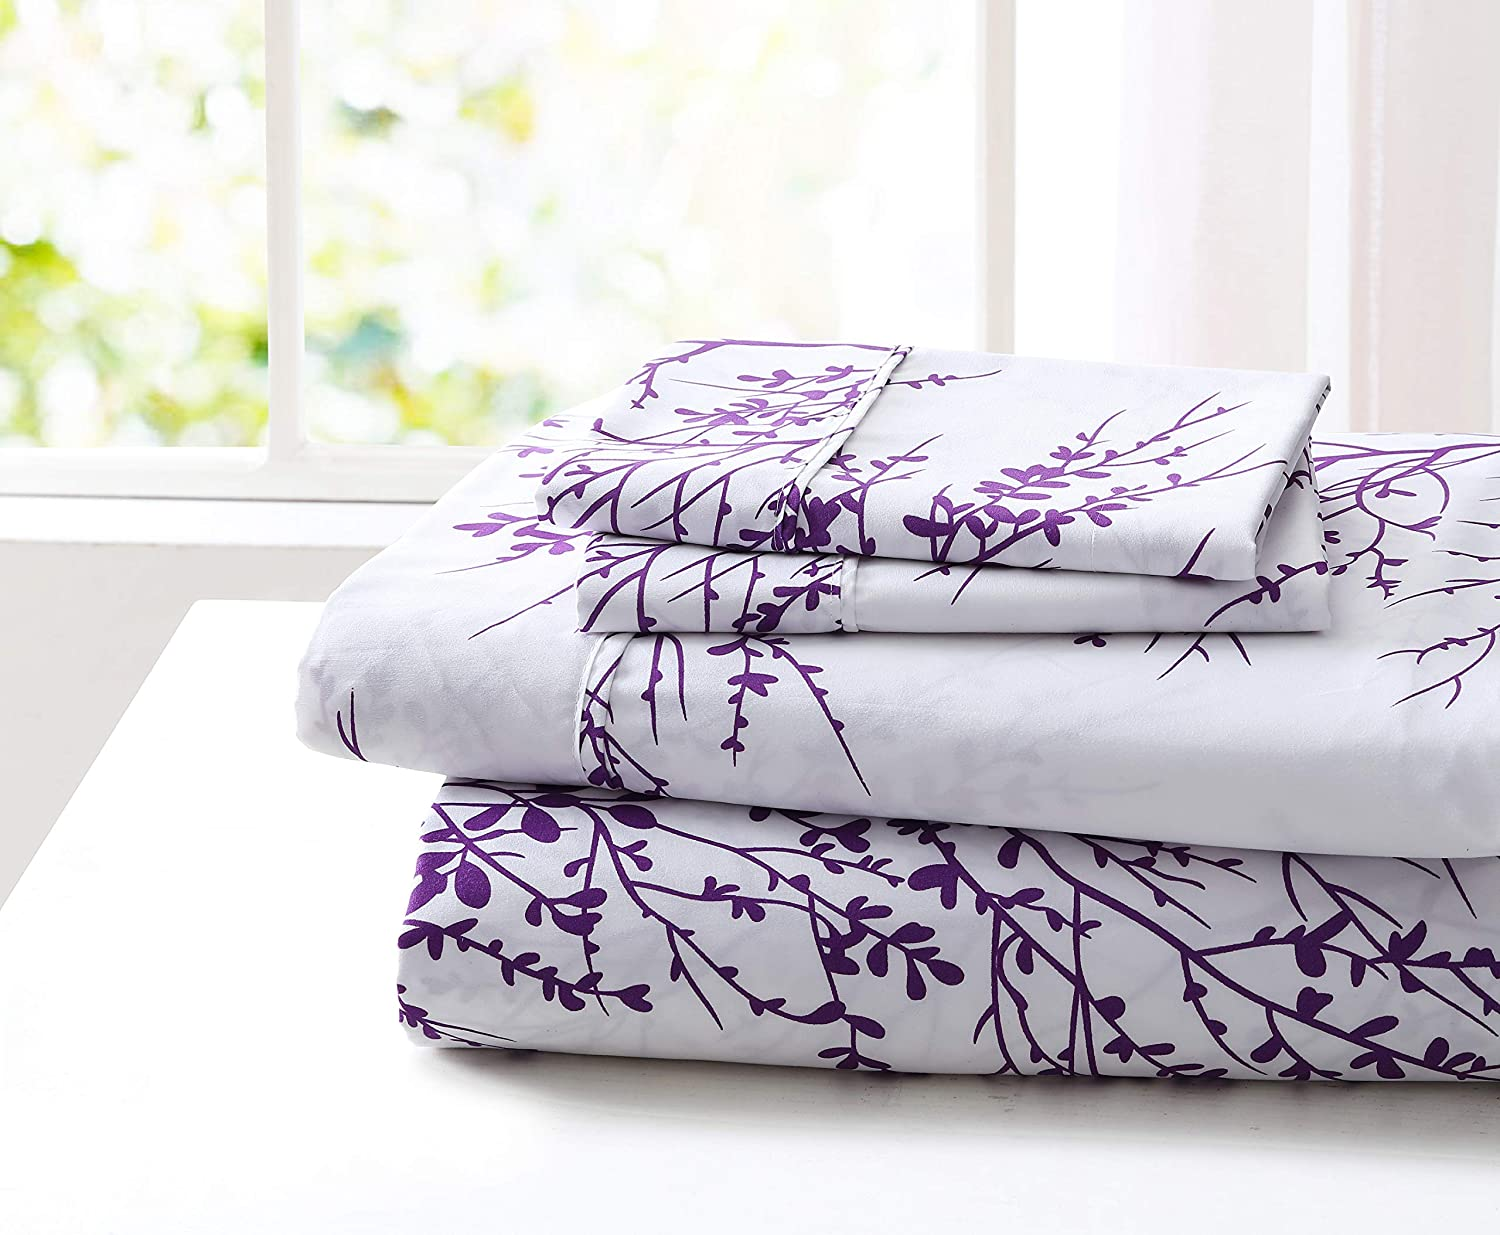 Spirit Linen Home 4pc Bed Sheets Set Printed Beautiful Foliage Design 1800 Bedding Soft Microfiber Sheet with Fitted Sheet and Pillowcases (Full, Purple White)